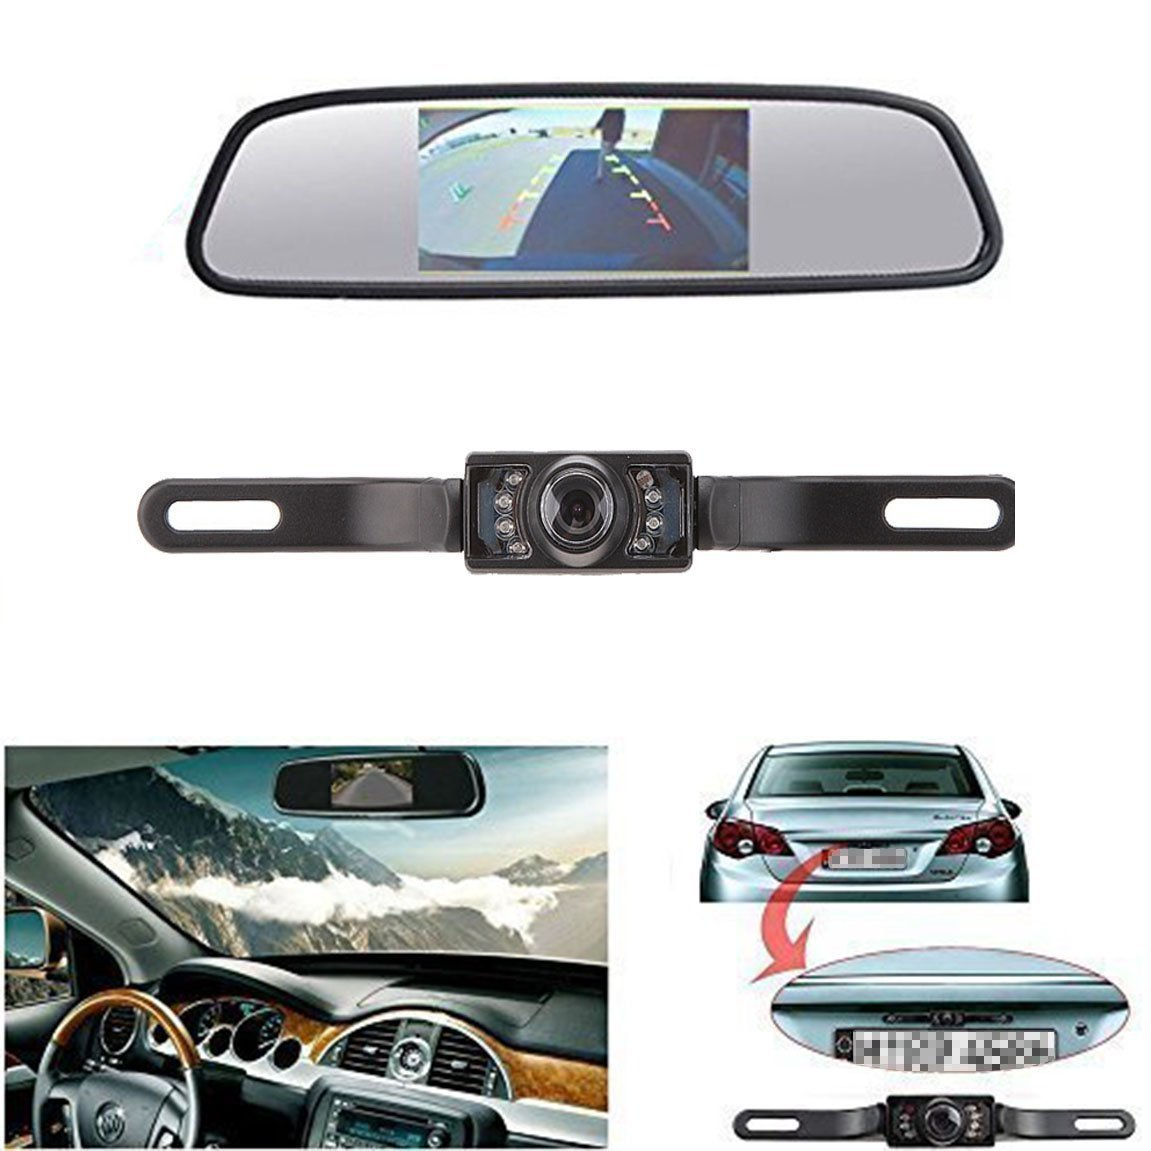 Leekooluu Cmos Reverse/Rear View Camera And Monitor Kit For Car With 7 Led Ni.. 18